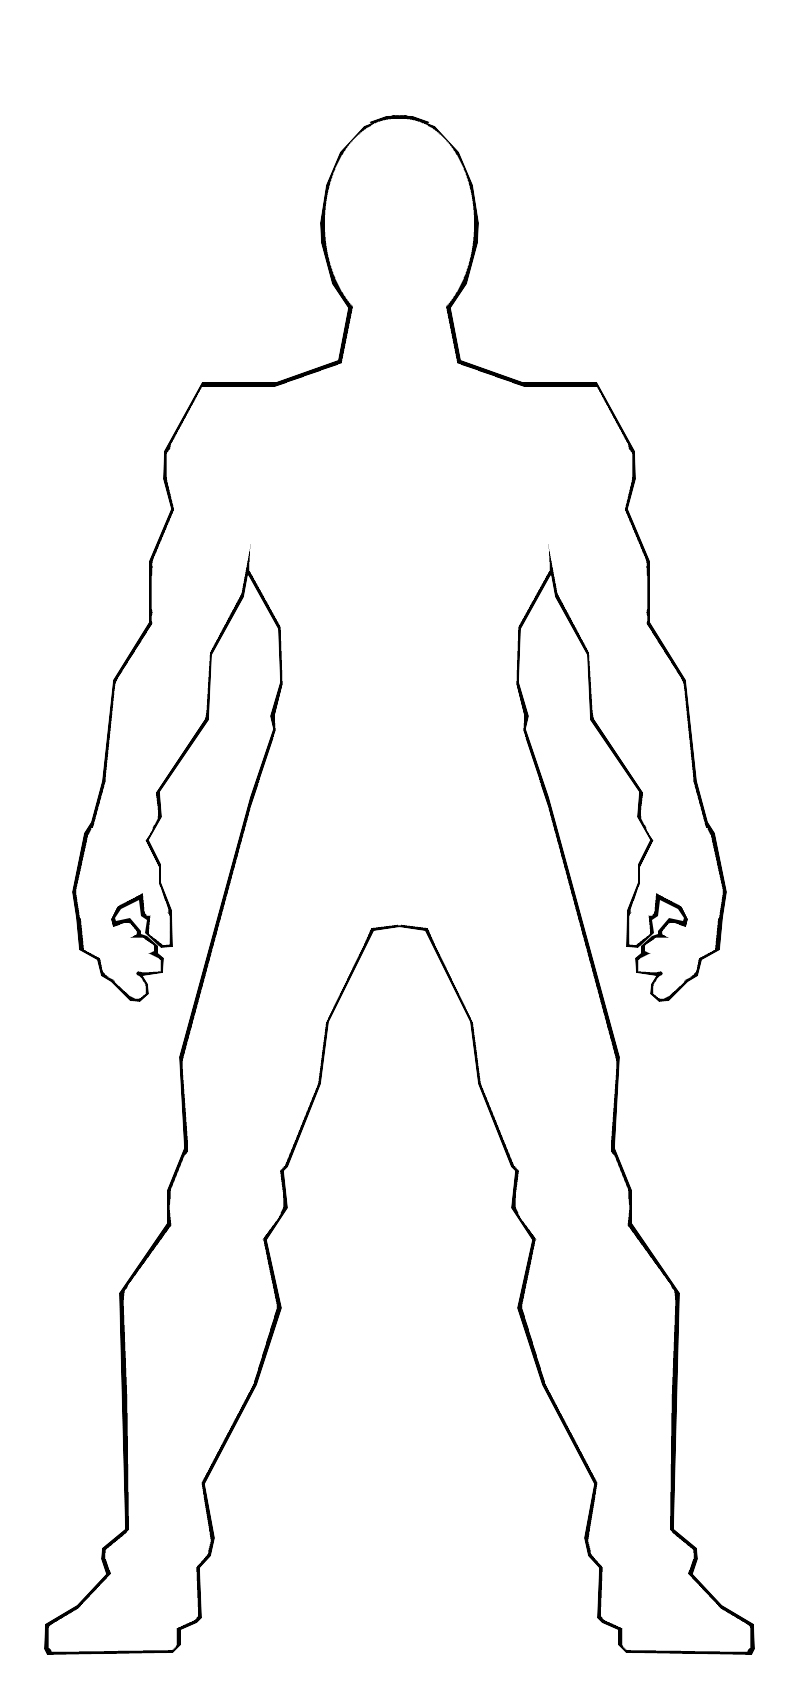 male body template by ss209 on DeviantArt